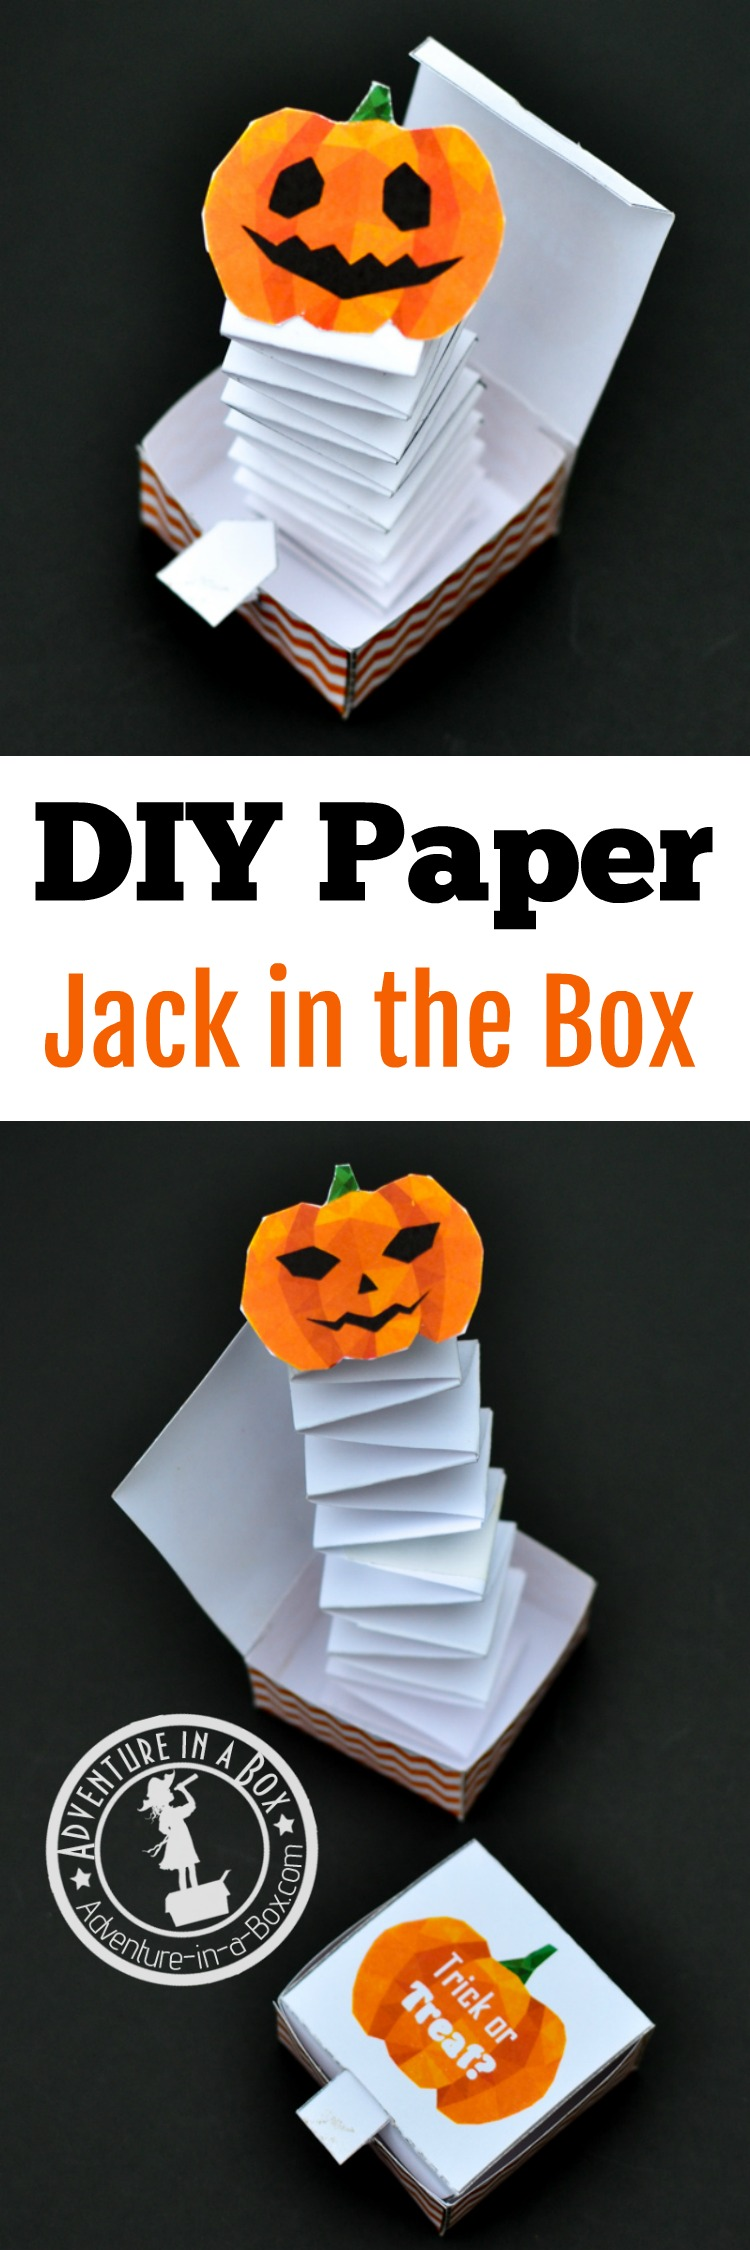 photograph about Jack in the Box Printable Application titled Jack within the Box Paper Toy with a Free of charge Printable Template